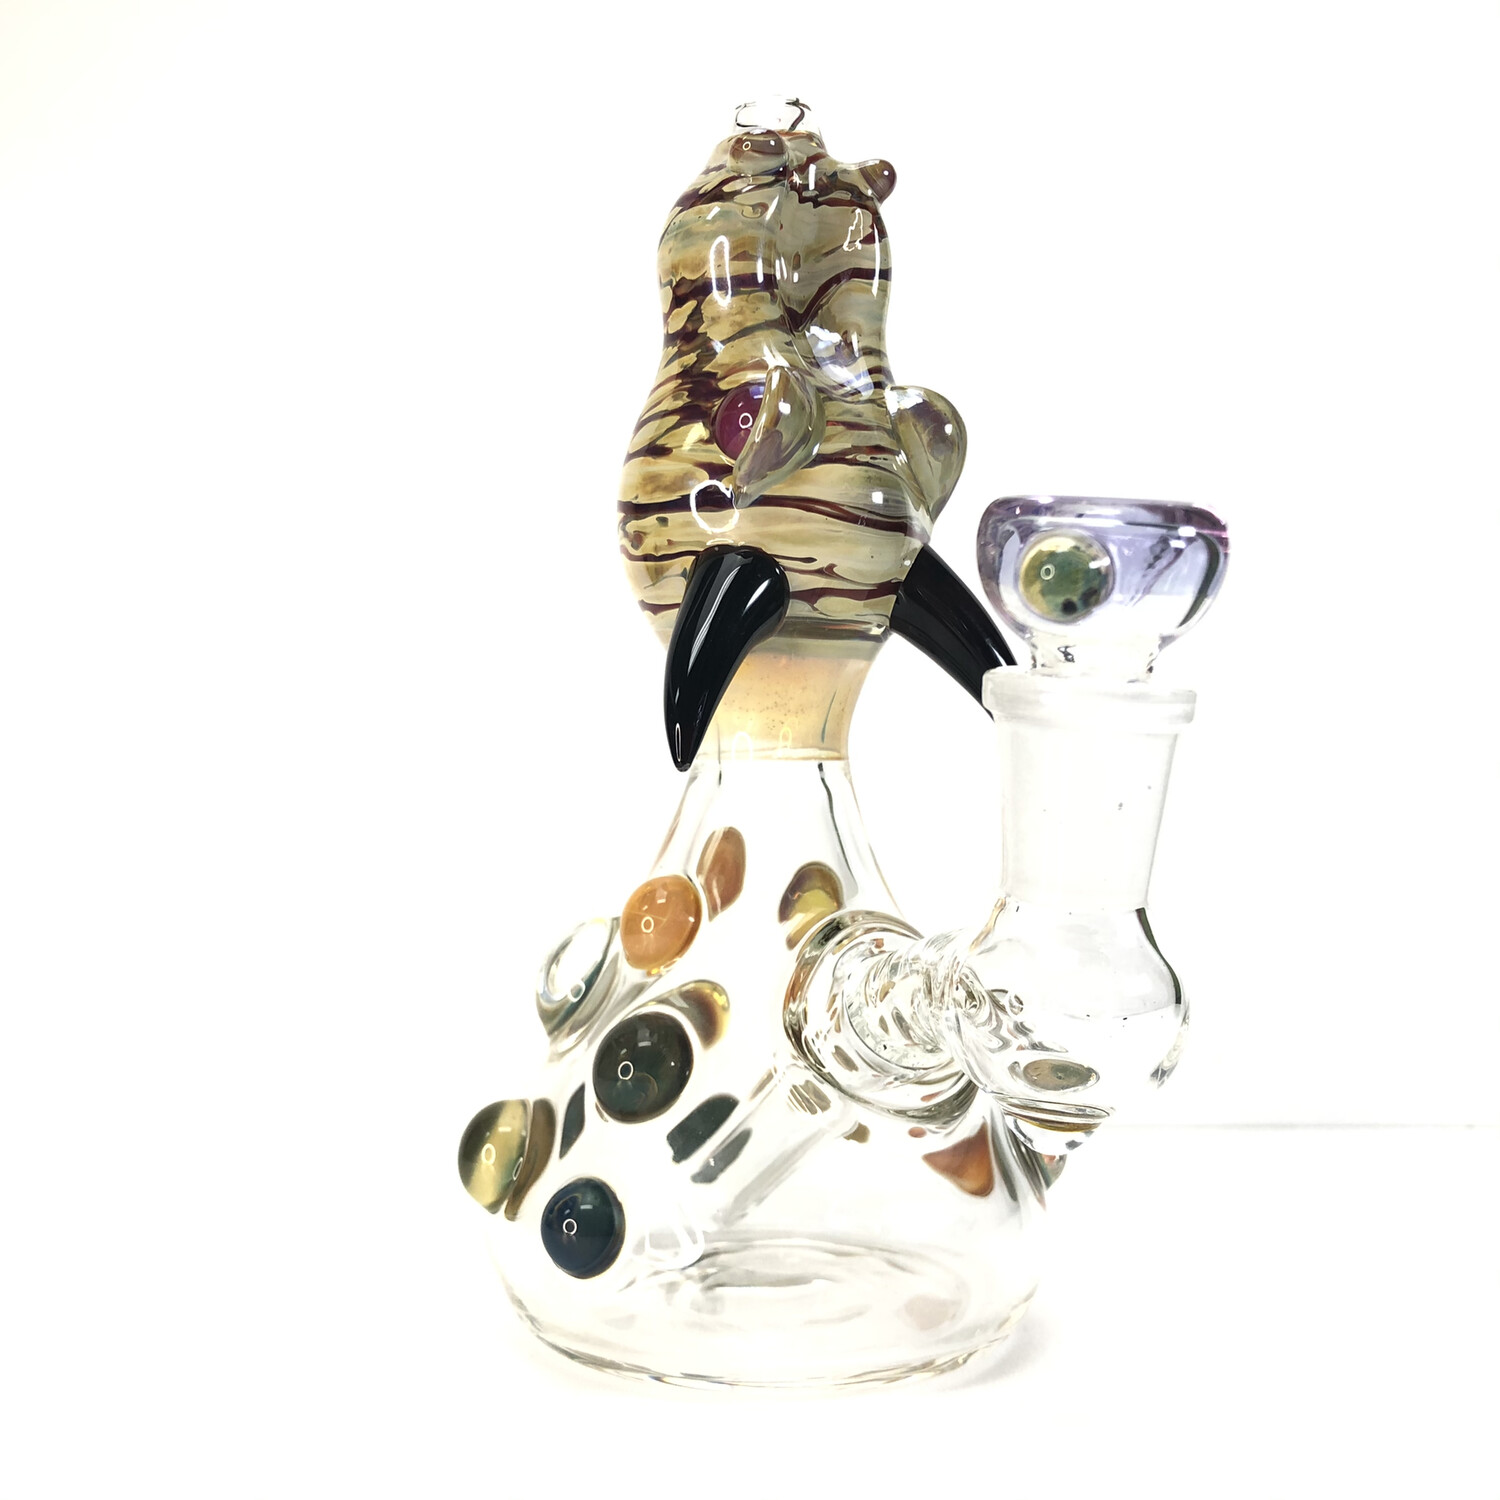 Lizard Stix x Cal Smith Dragon Rig w/ colored warts